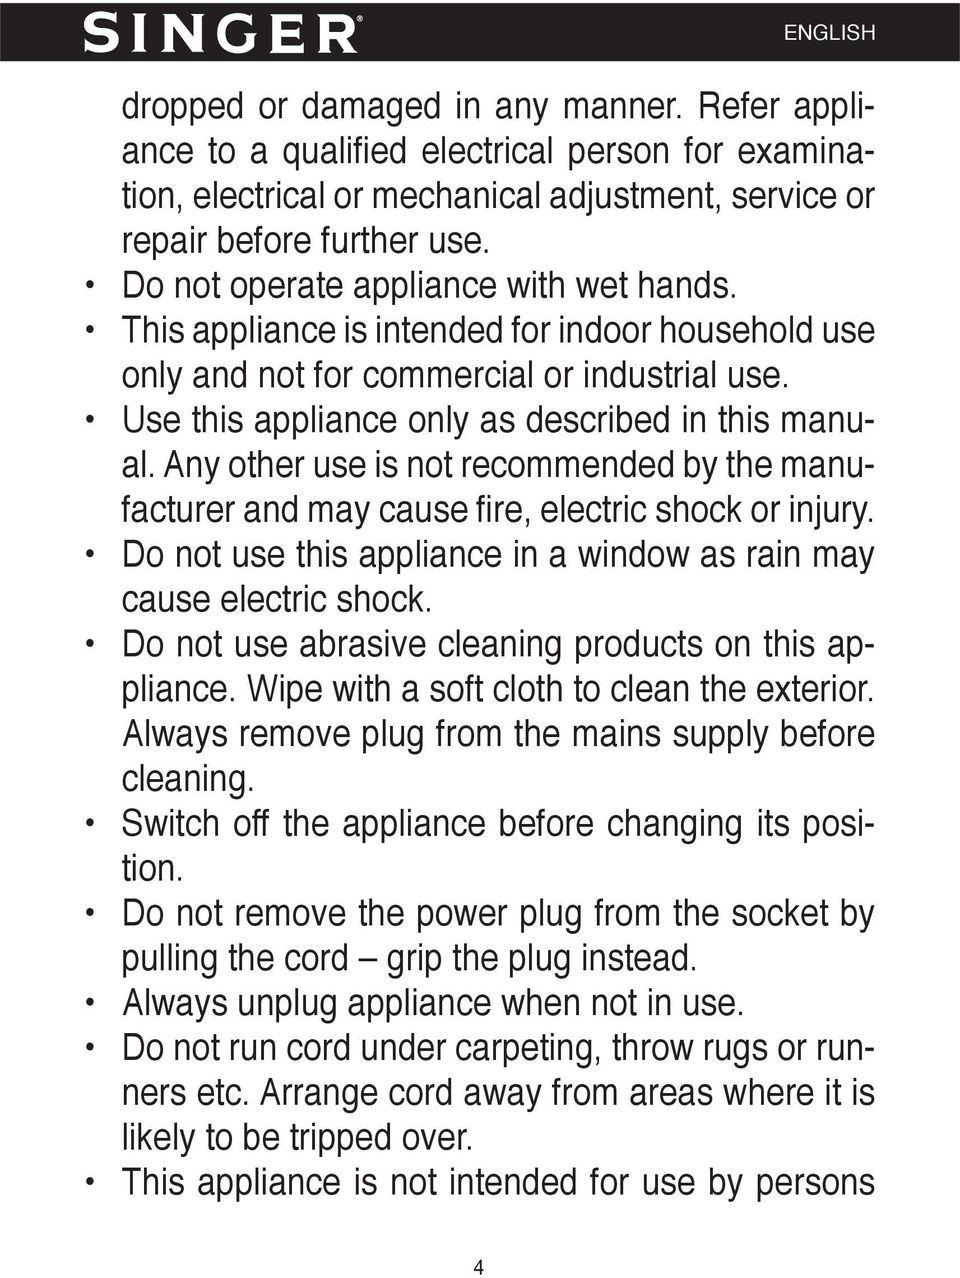 Any other use is not recommended by the manufacturer and may cause fi re, electric shock or injury. Do not use this appliance in a window as rain may cause electric shock.